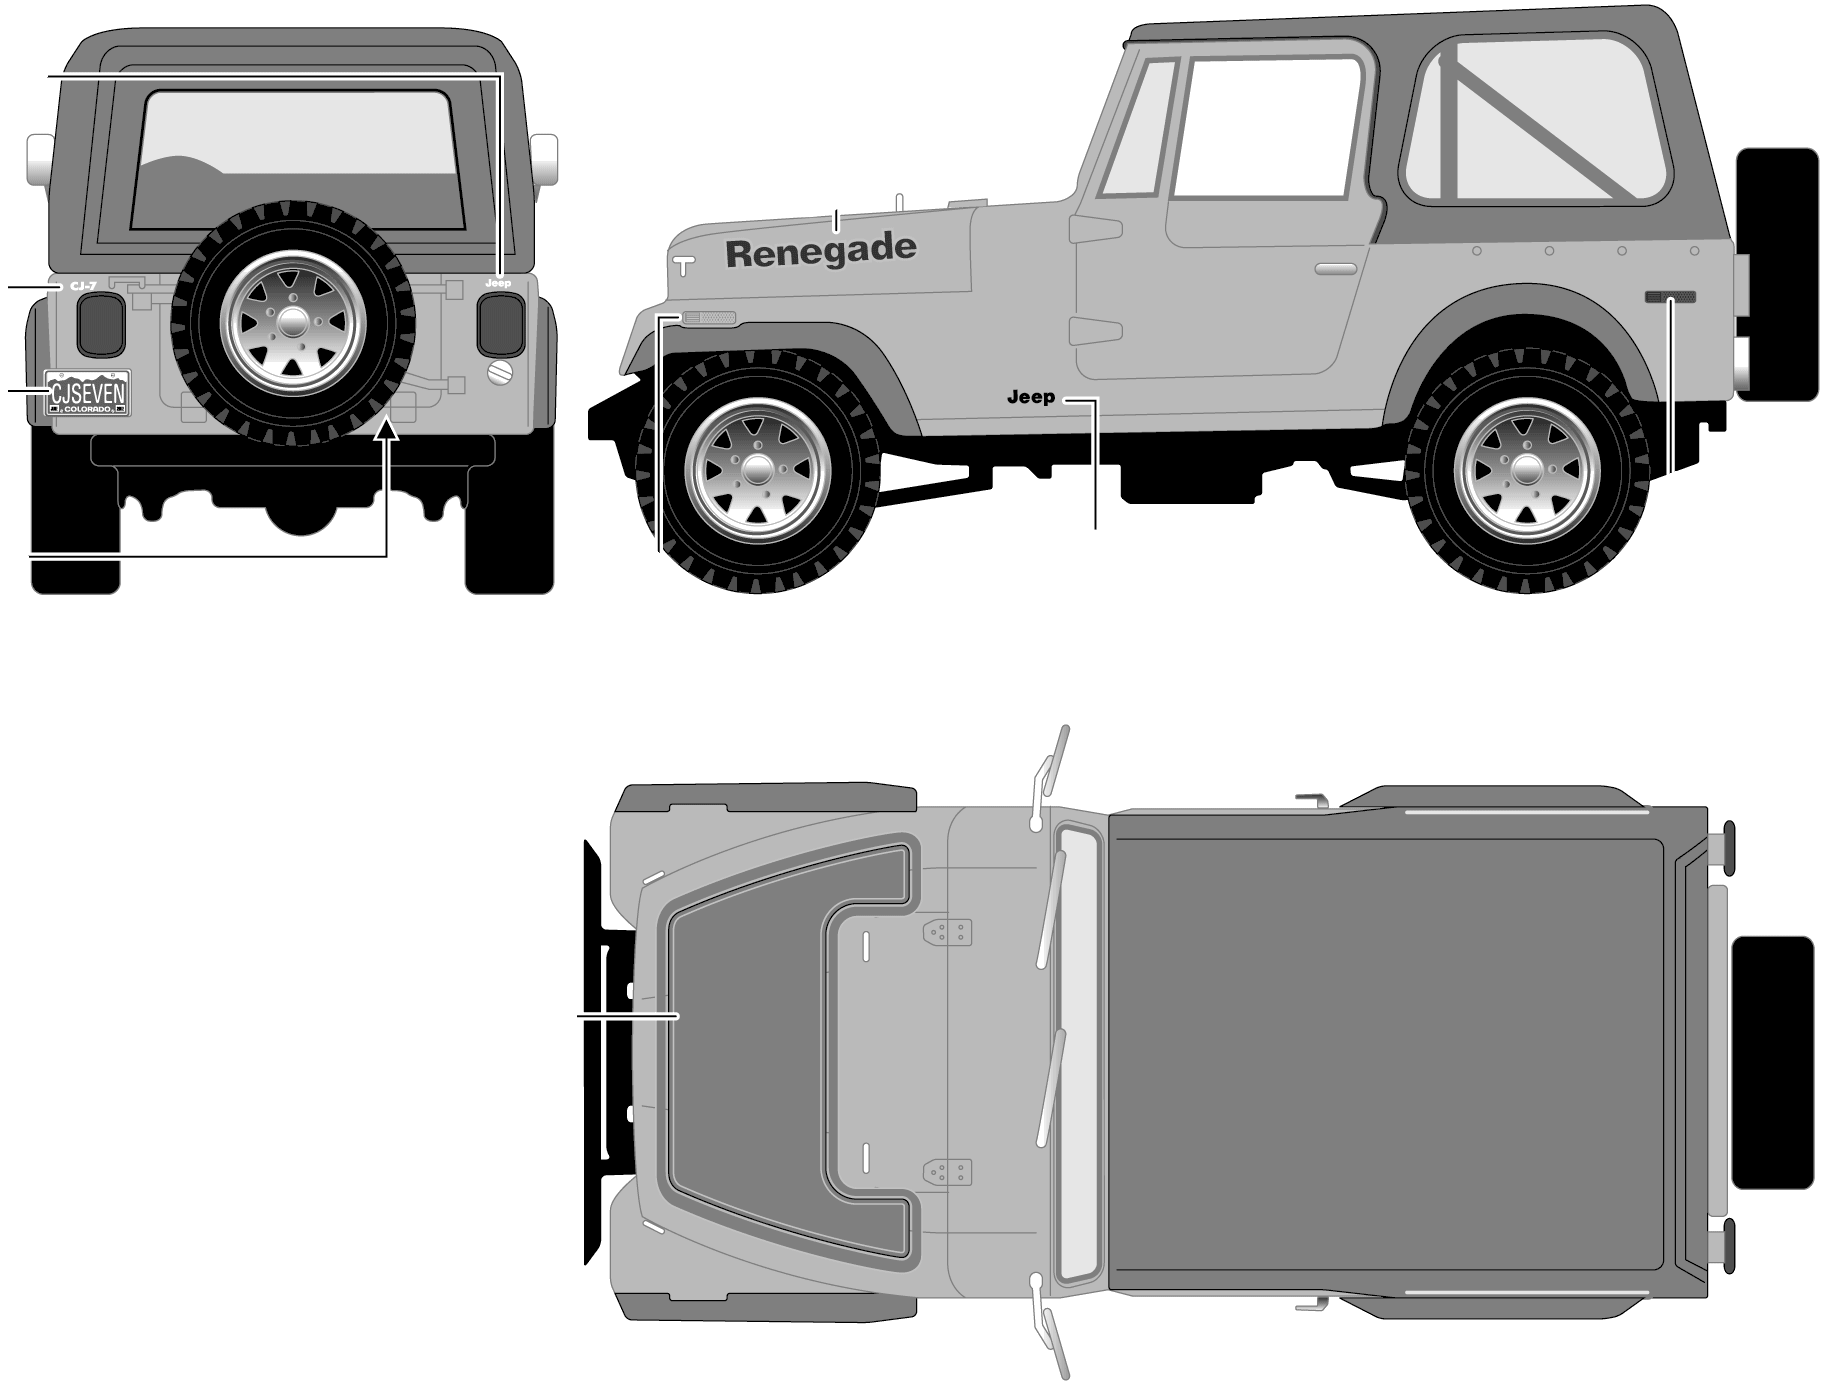 1977 Jeep CJ7 Renegade SUV